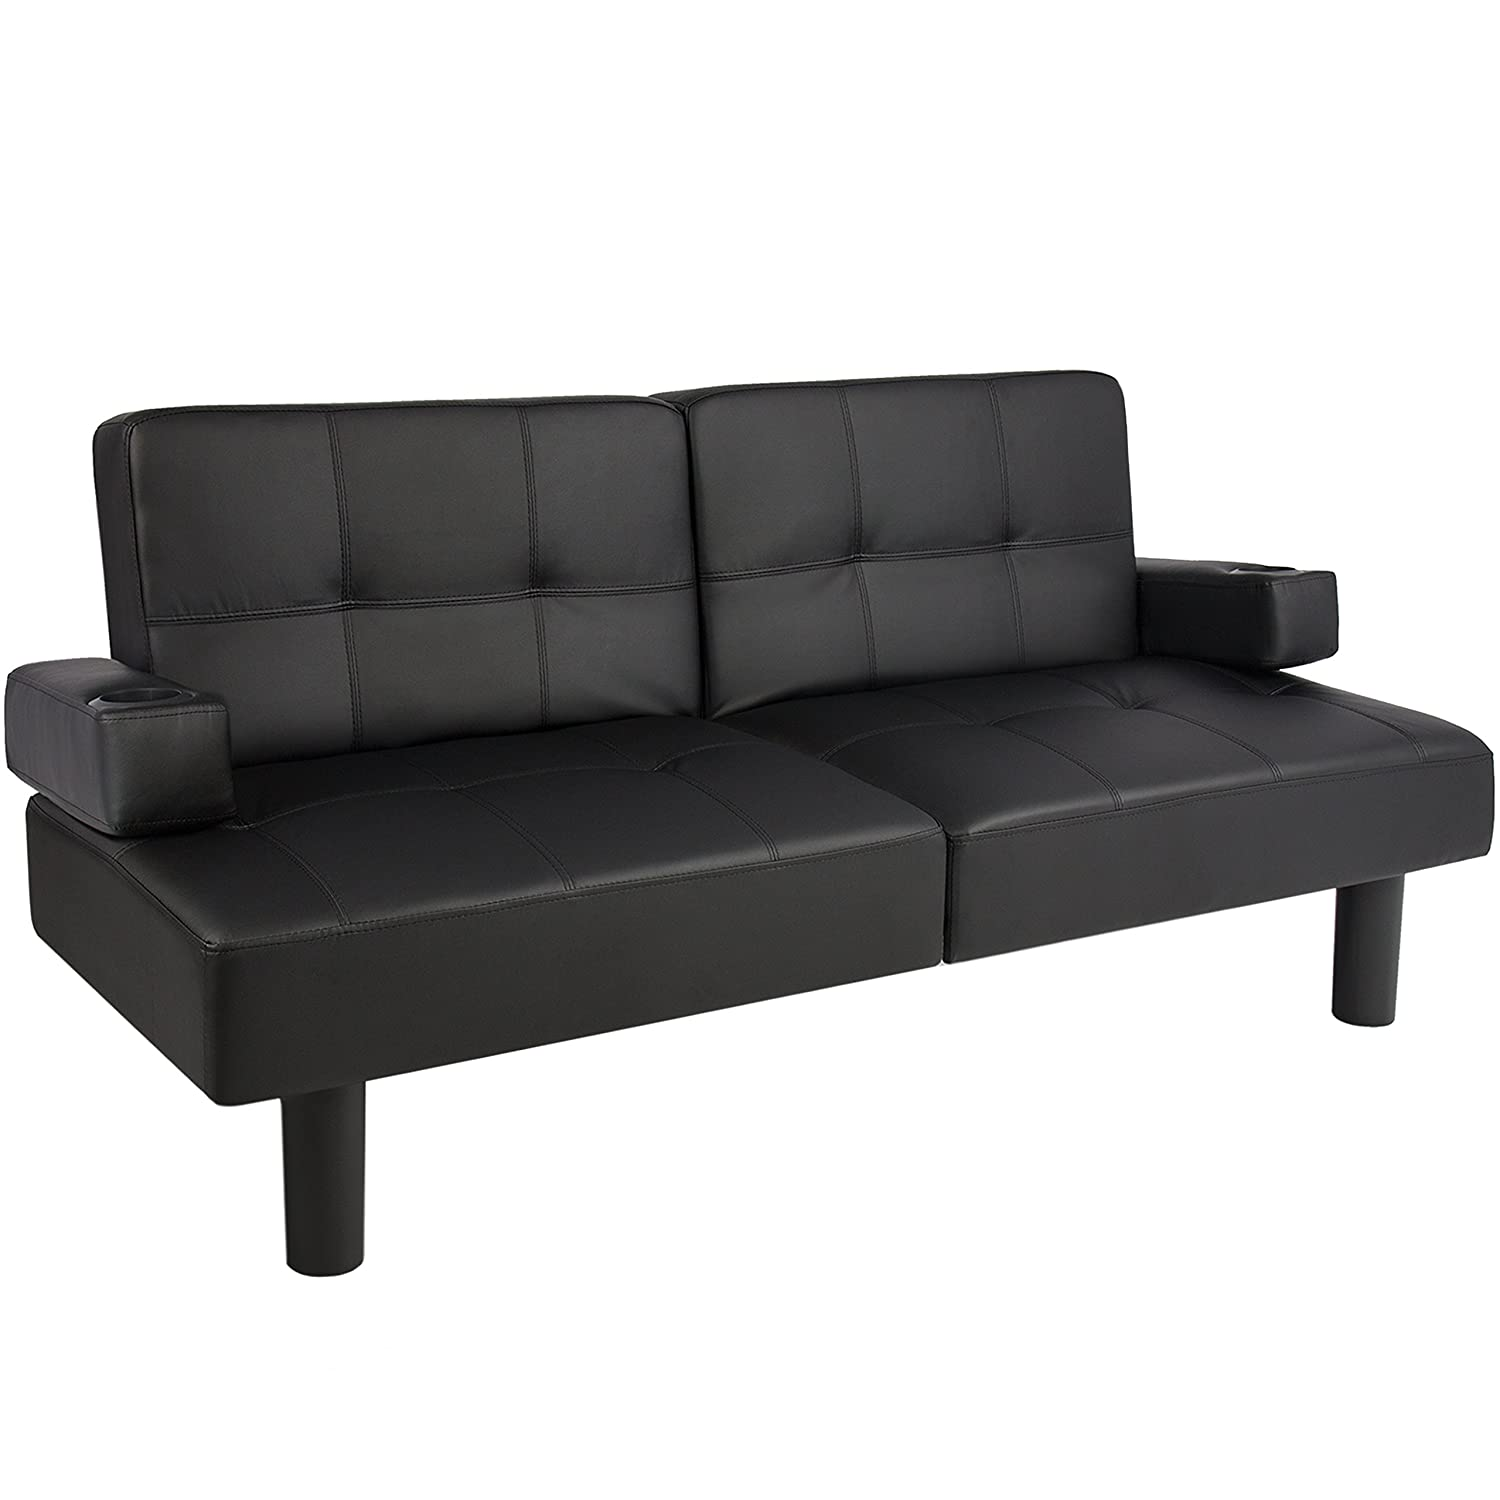 Best Choice Products Leather Faux Fold Down Futon Lounge Convertible Sofa Bed Ebay